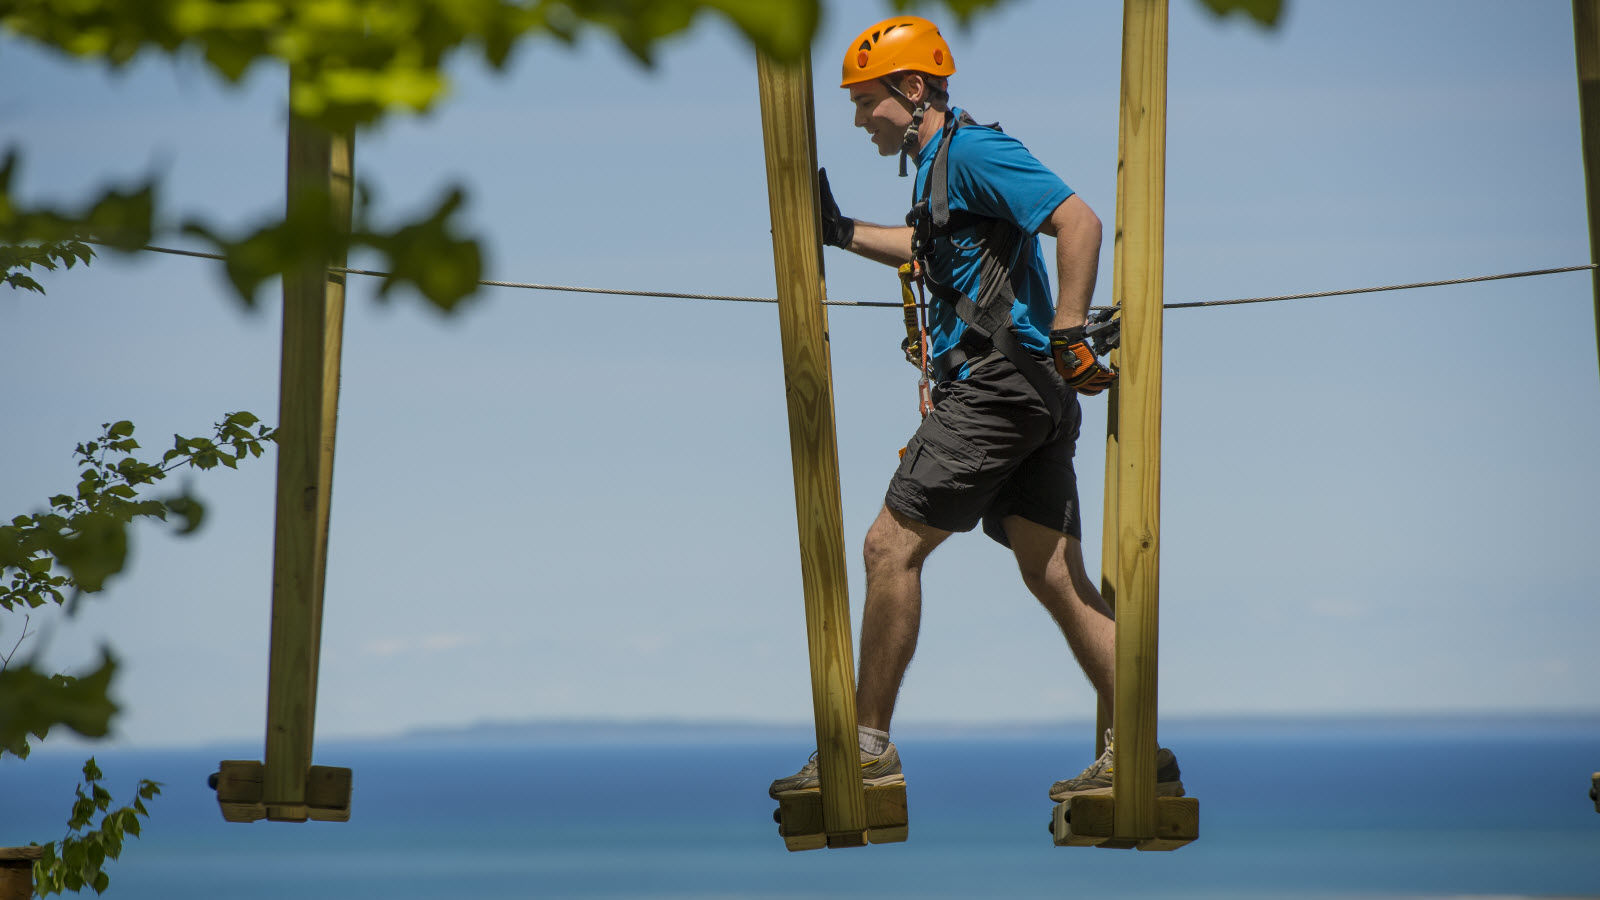 Blue Mountain Fall Activities - Ropes Courses